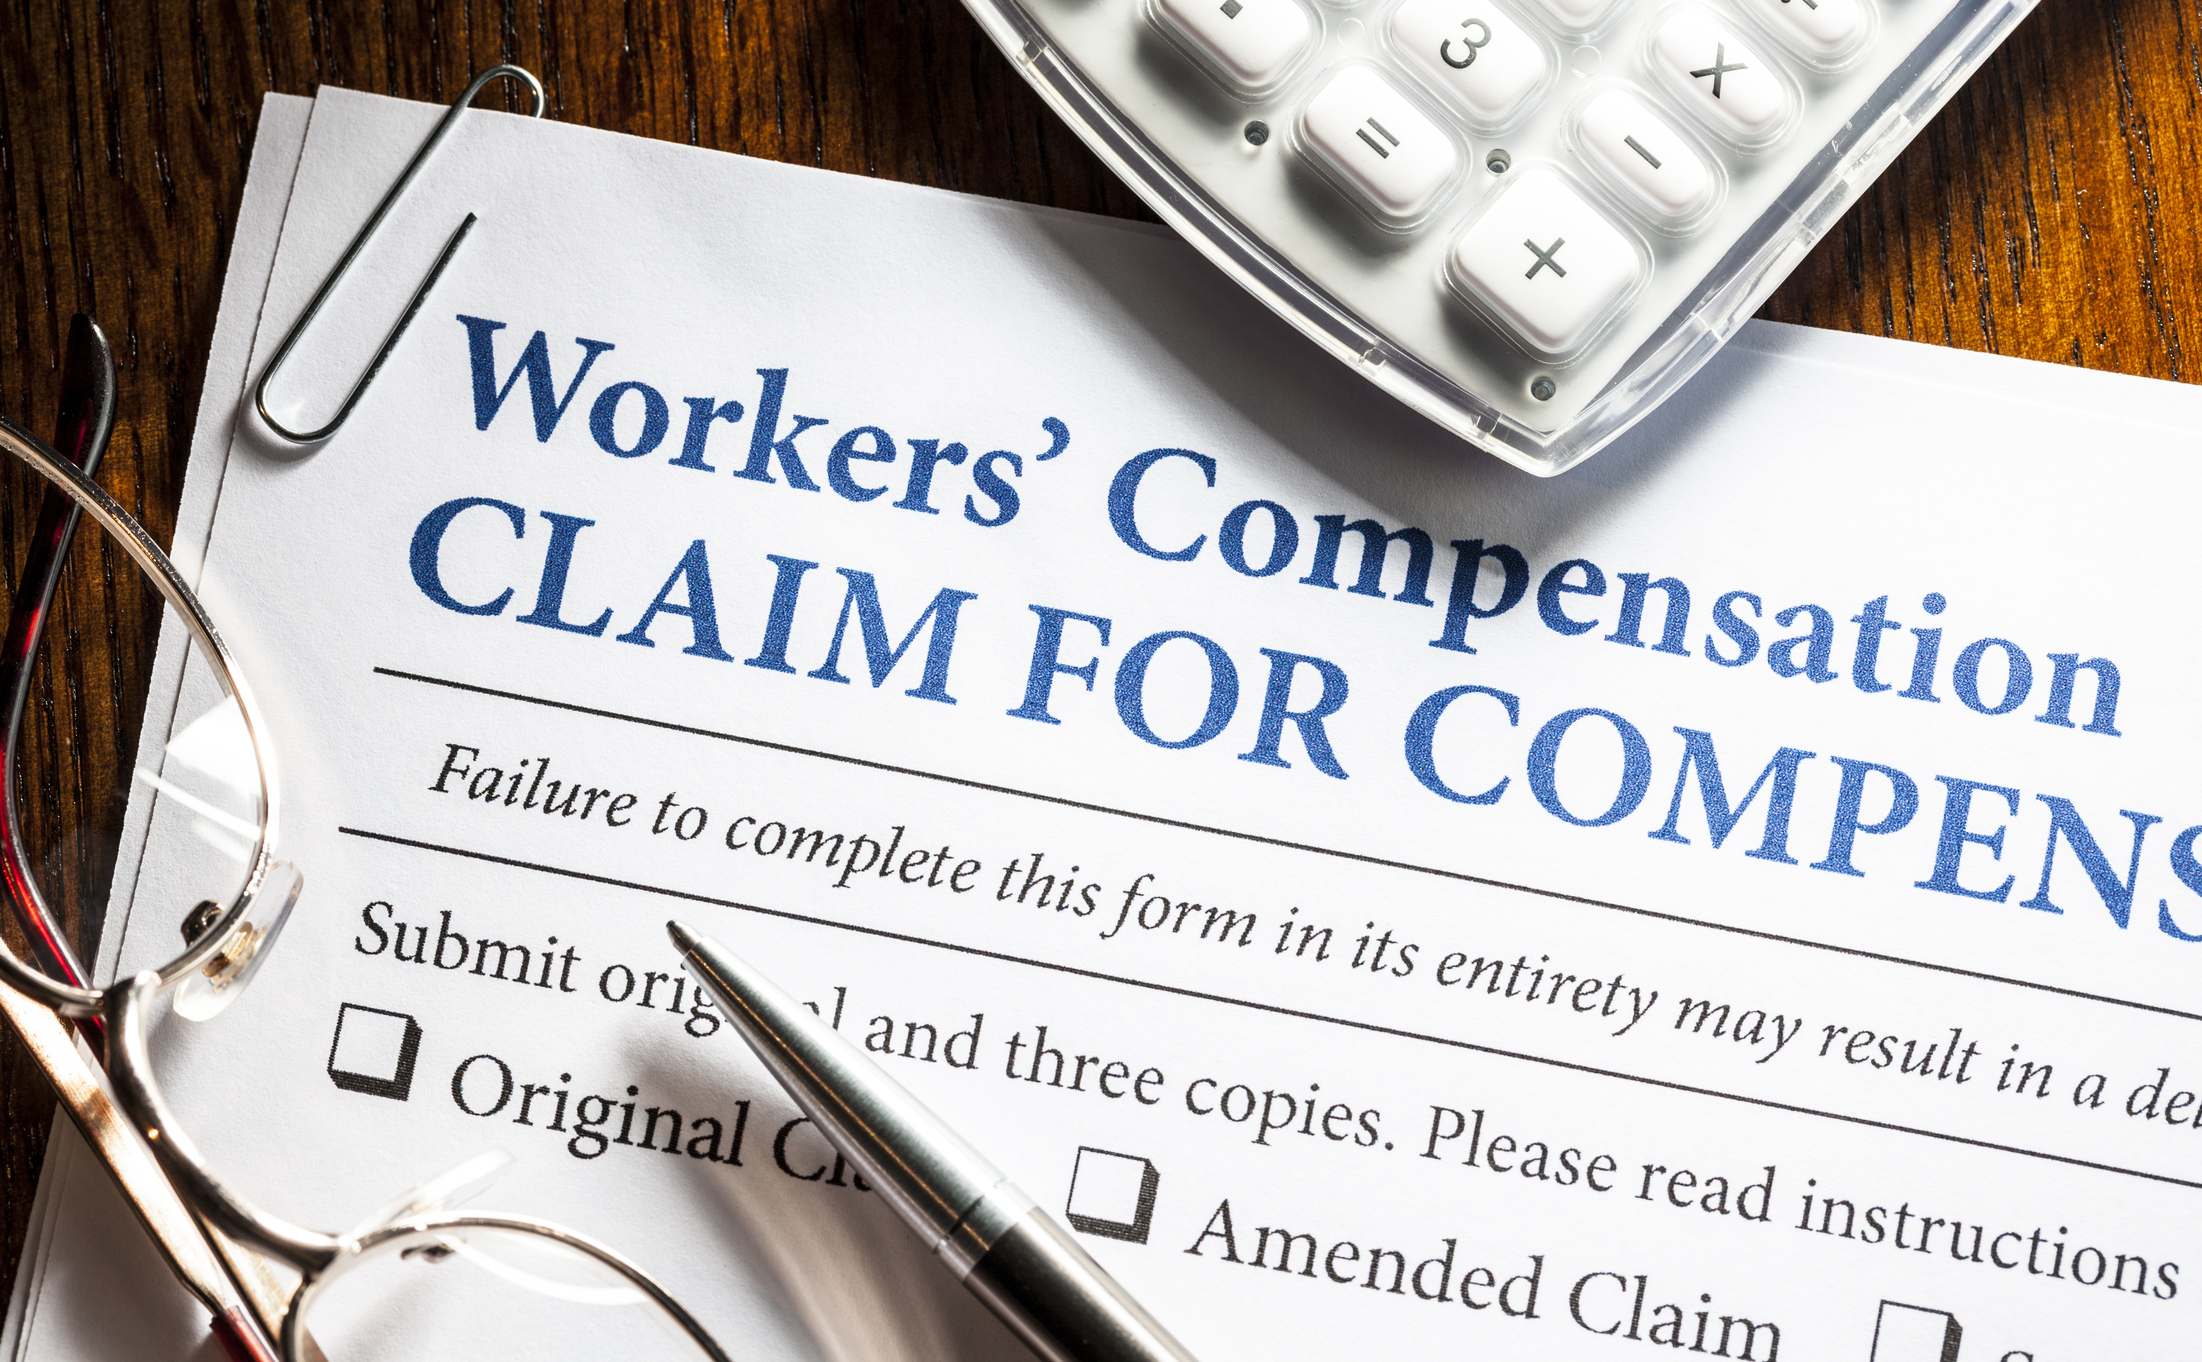 Workers Compensation - Accidents happen. We have you covered in case it happens to you on the job.